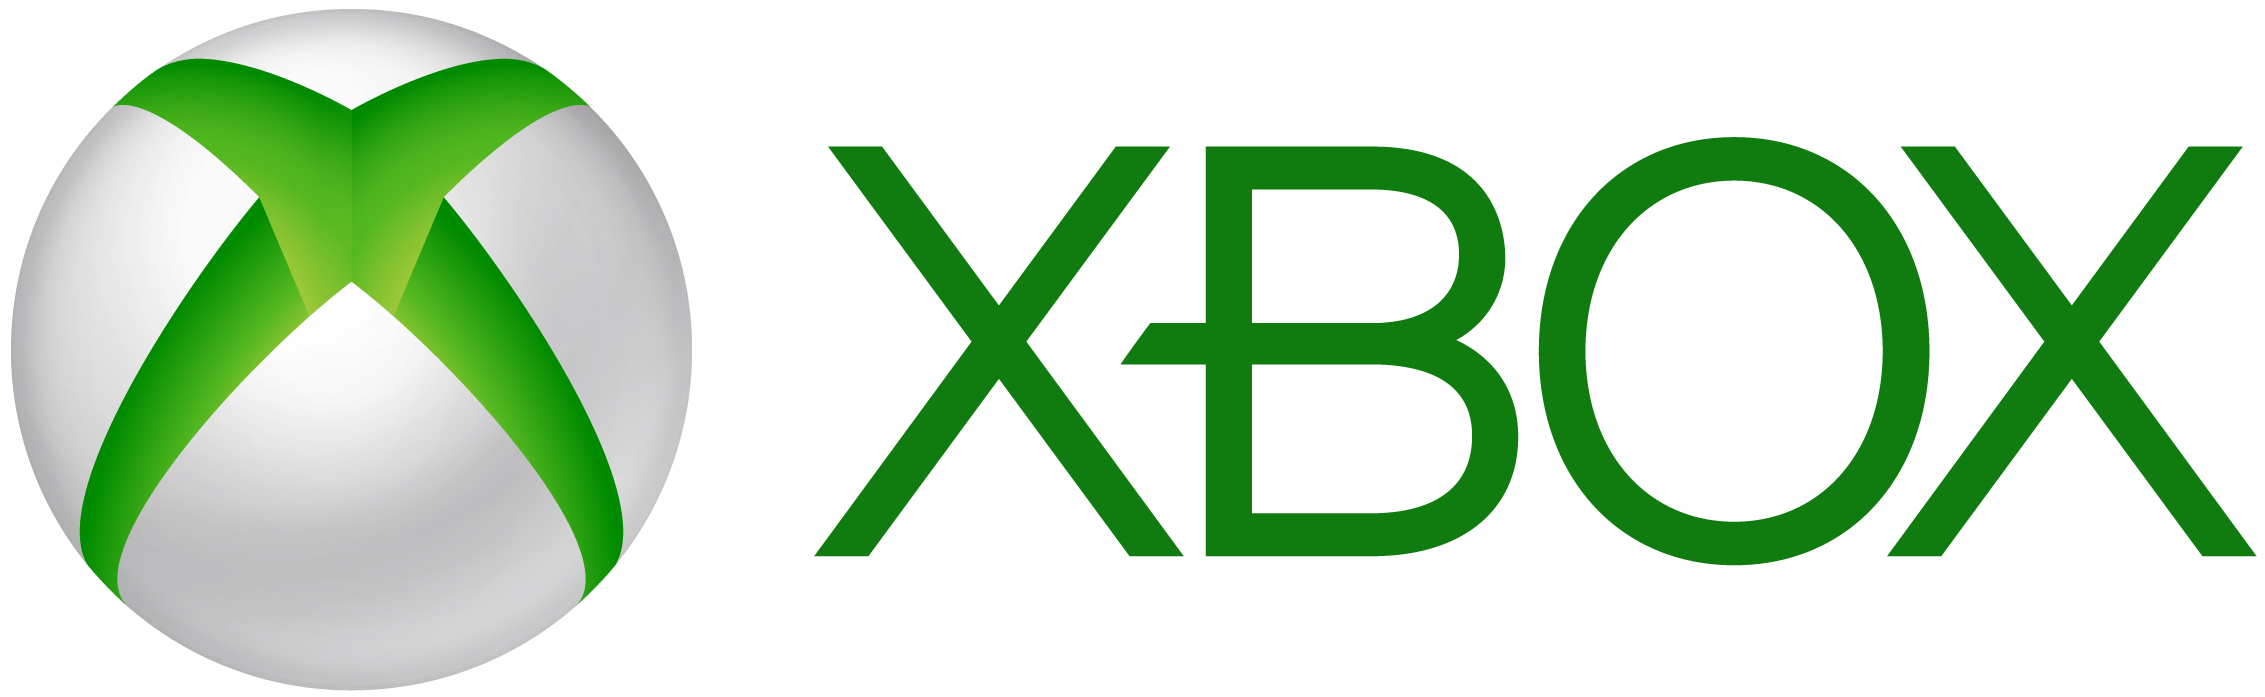 Xbox 2013 Logo HOT BOT